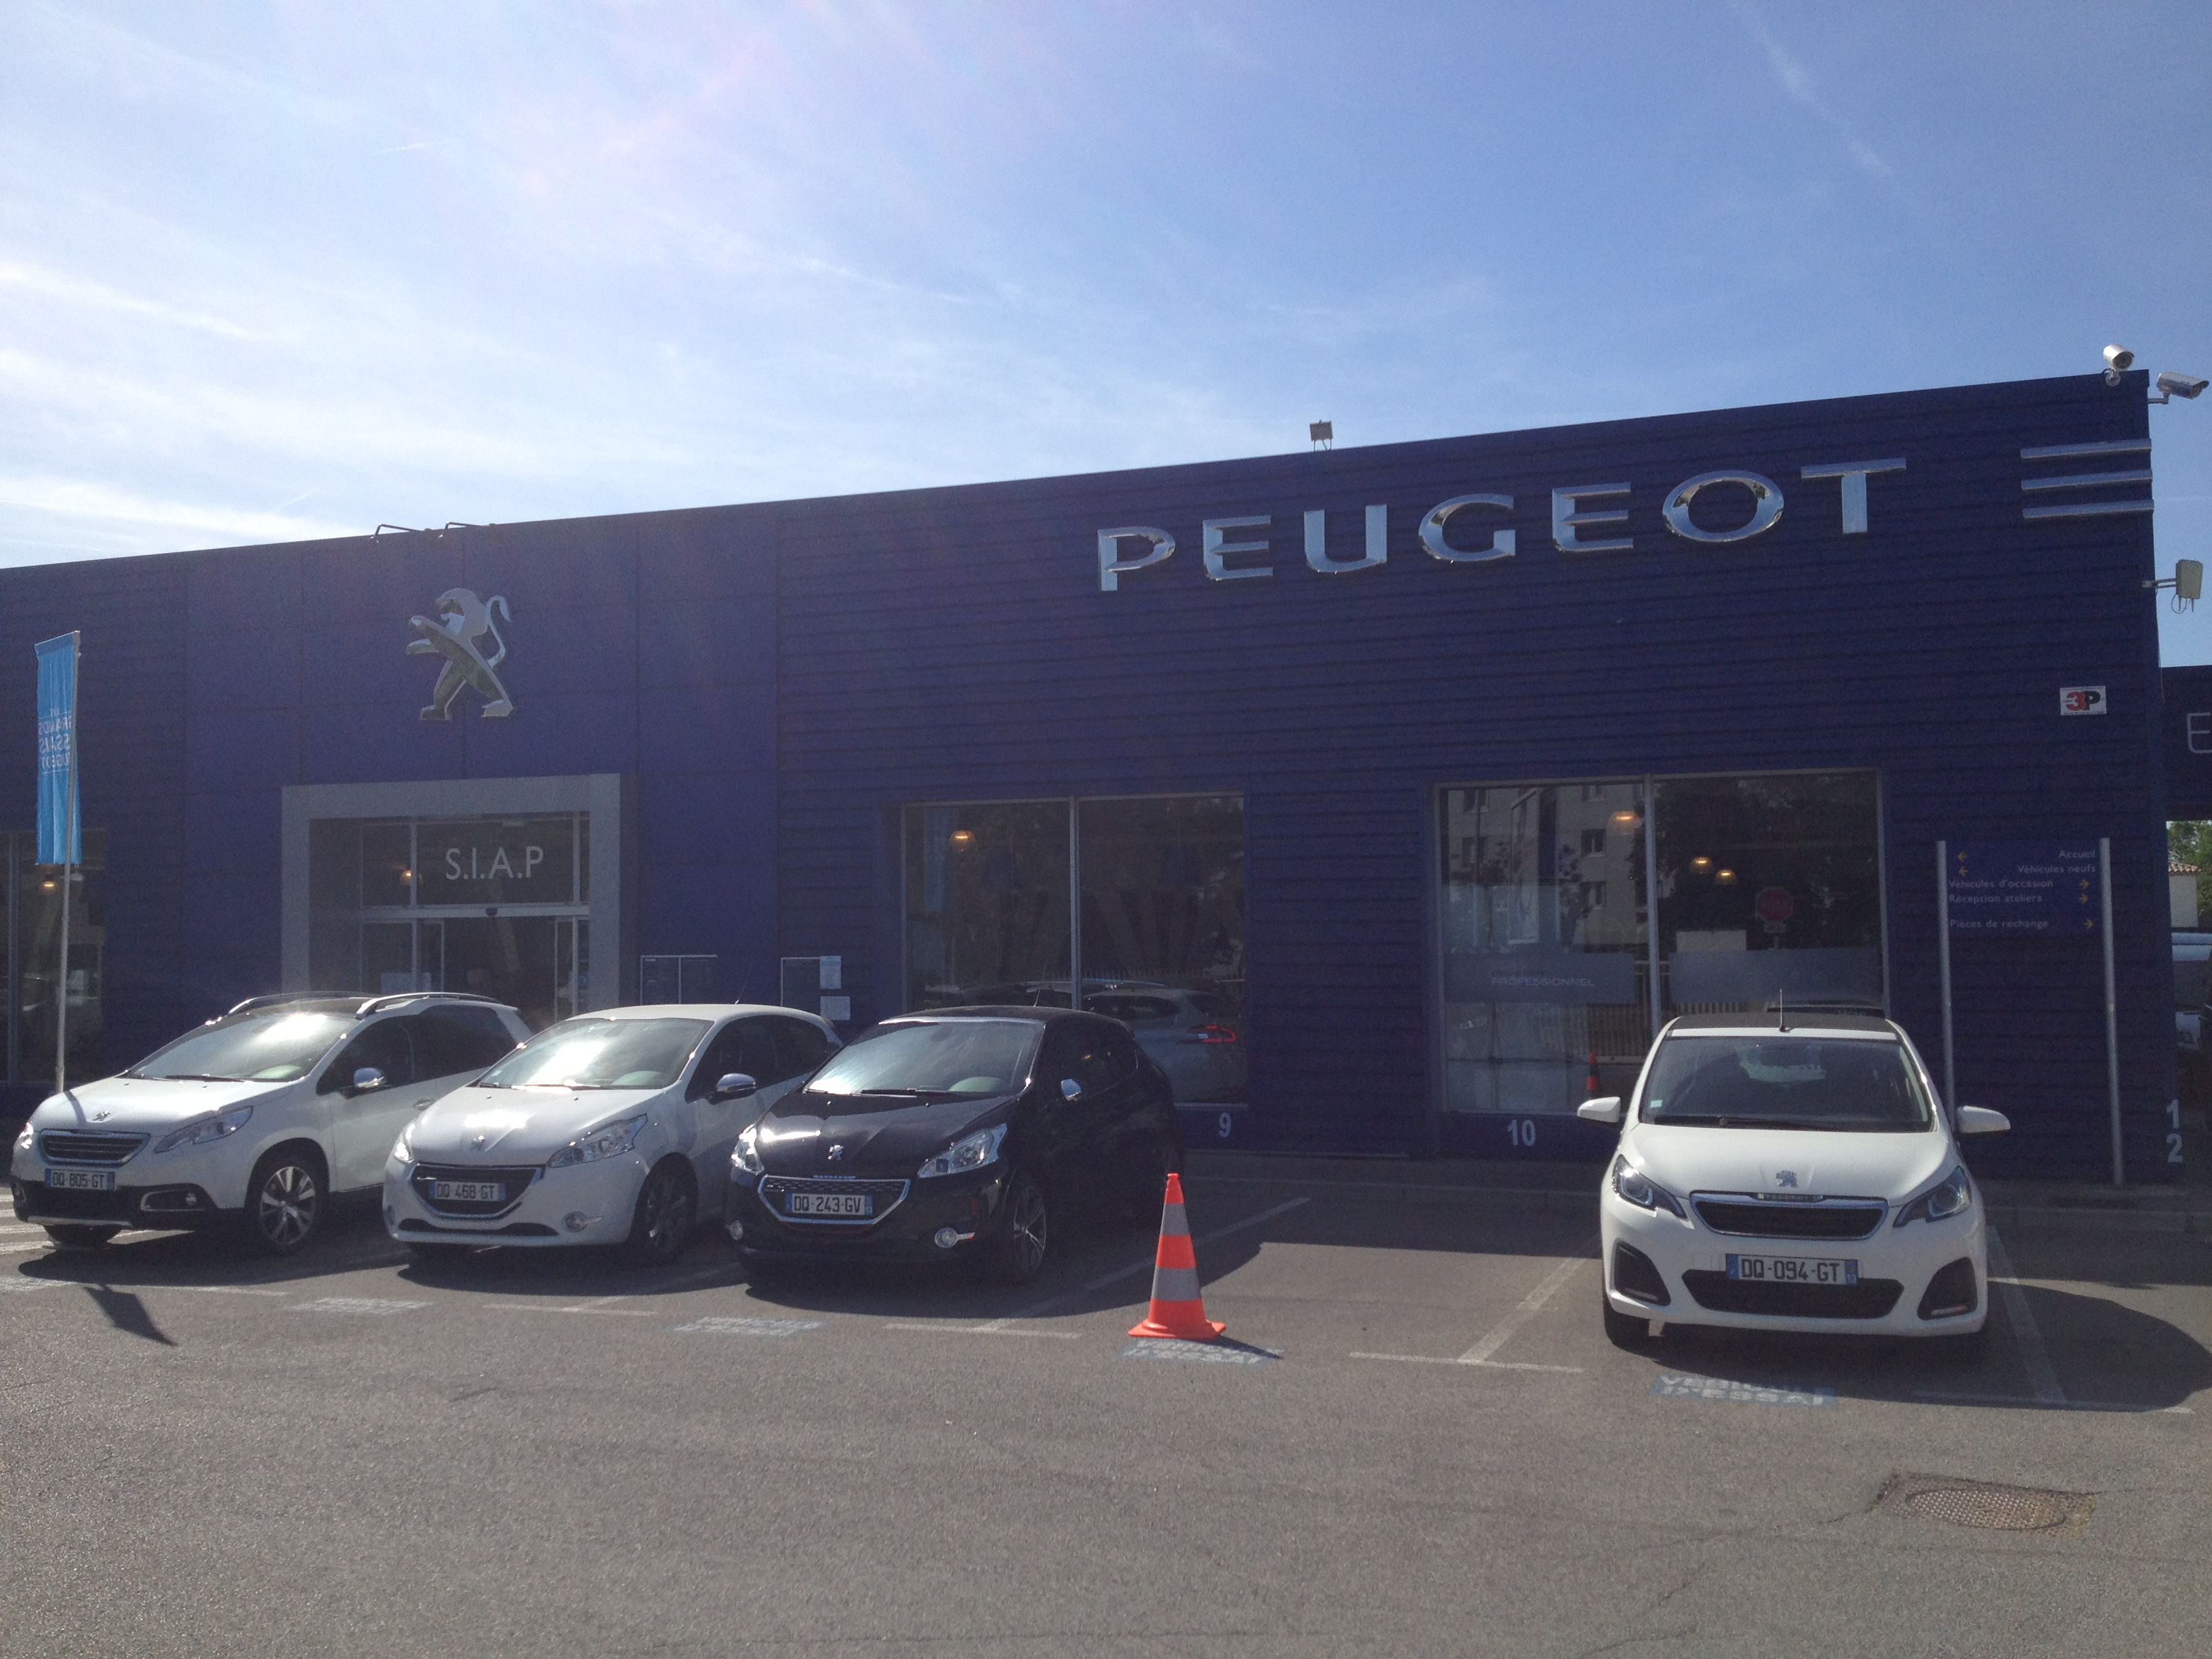 Automobiles peugeot siap marignane concessionnaire for Garage pole automobile marignane